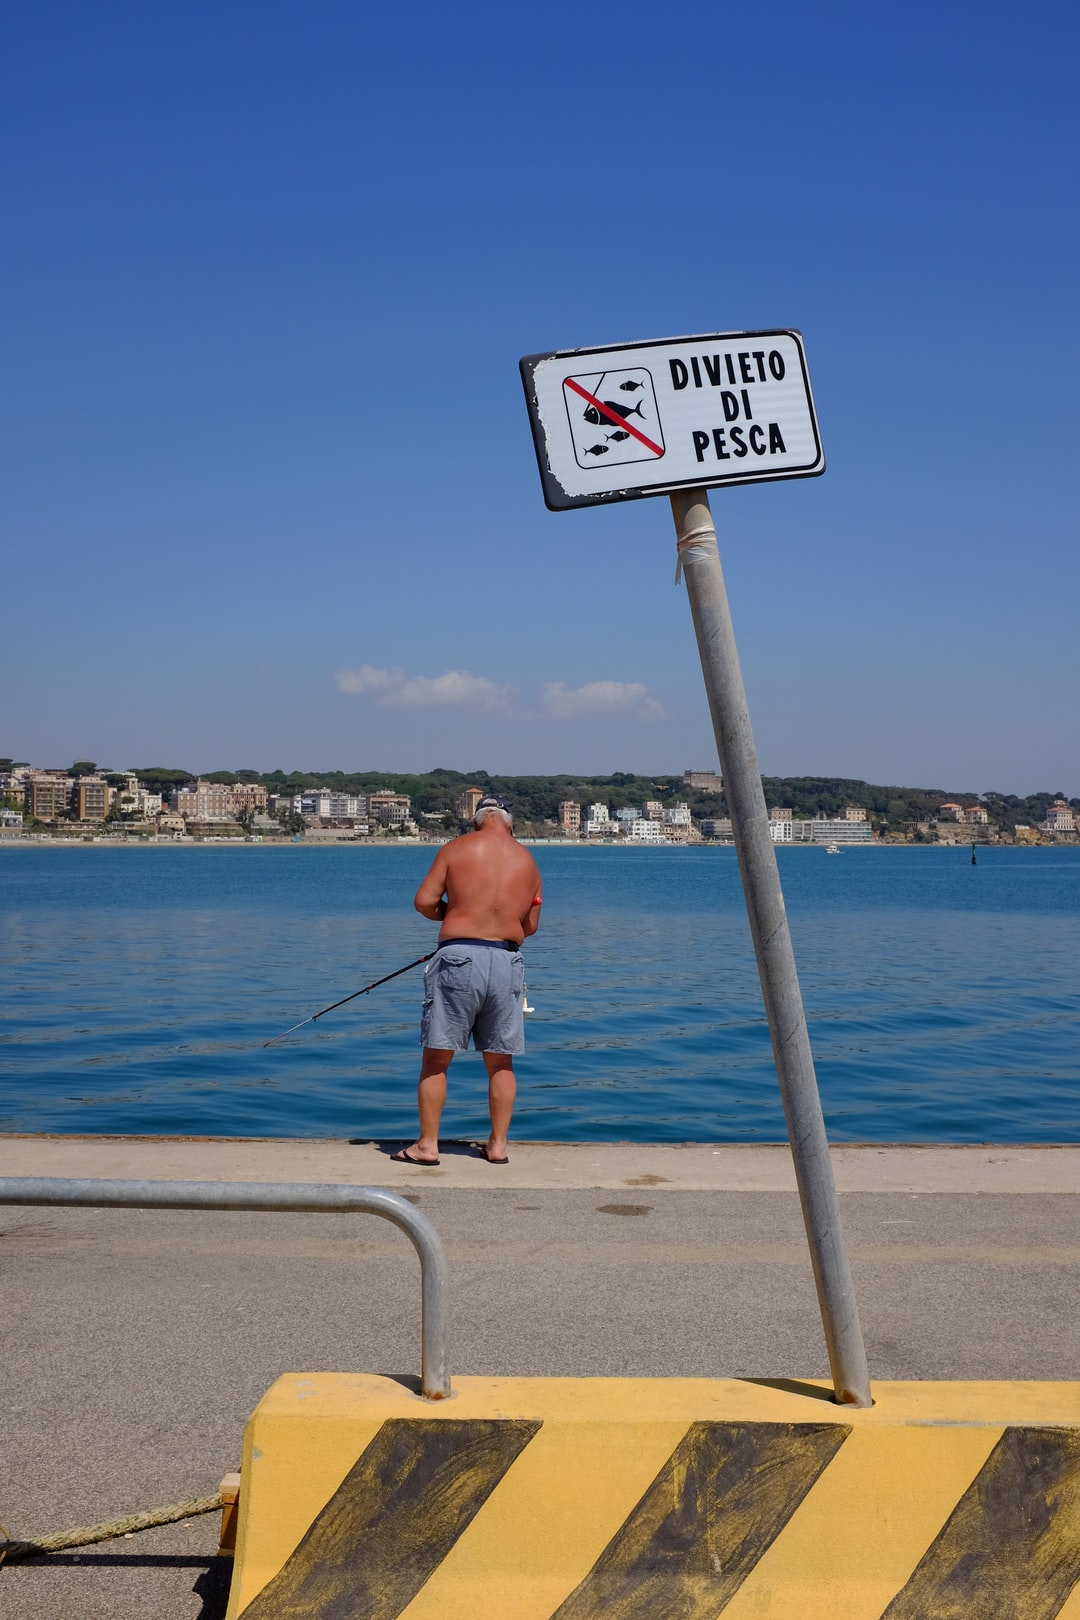 A man is fishing under a sign that prohibits fishing